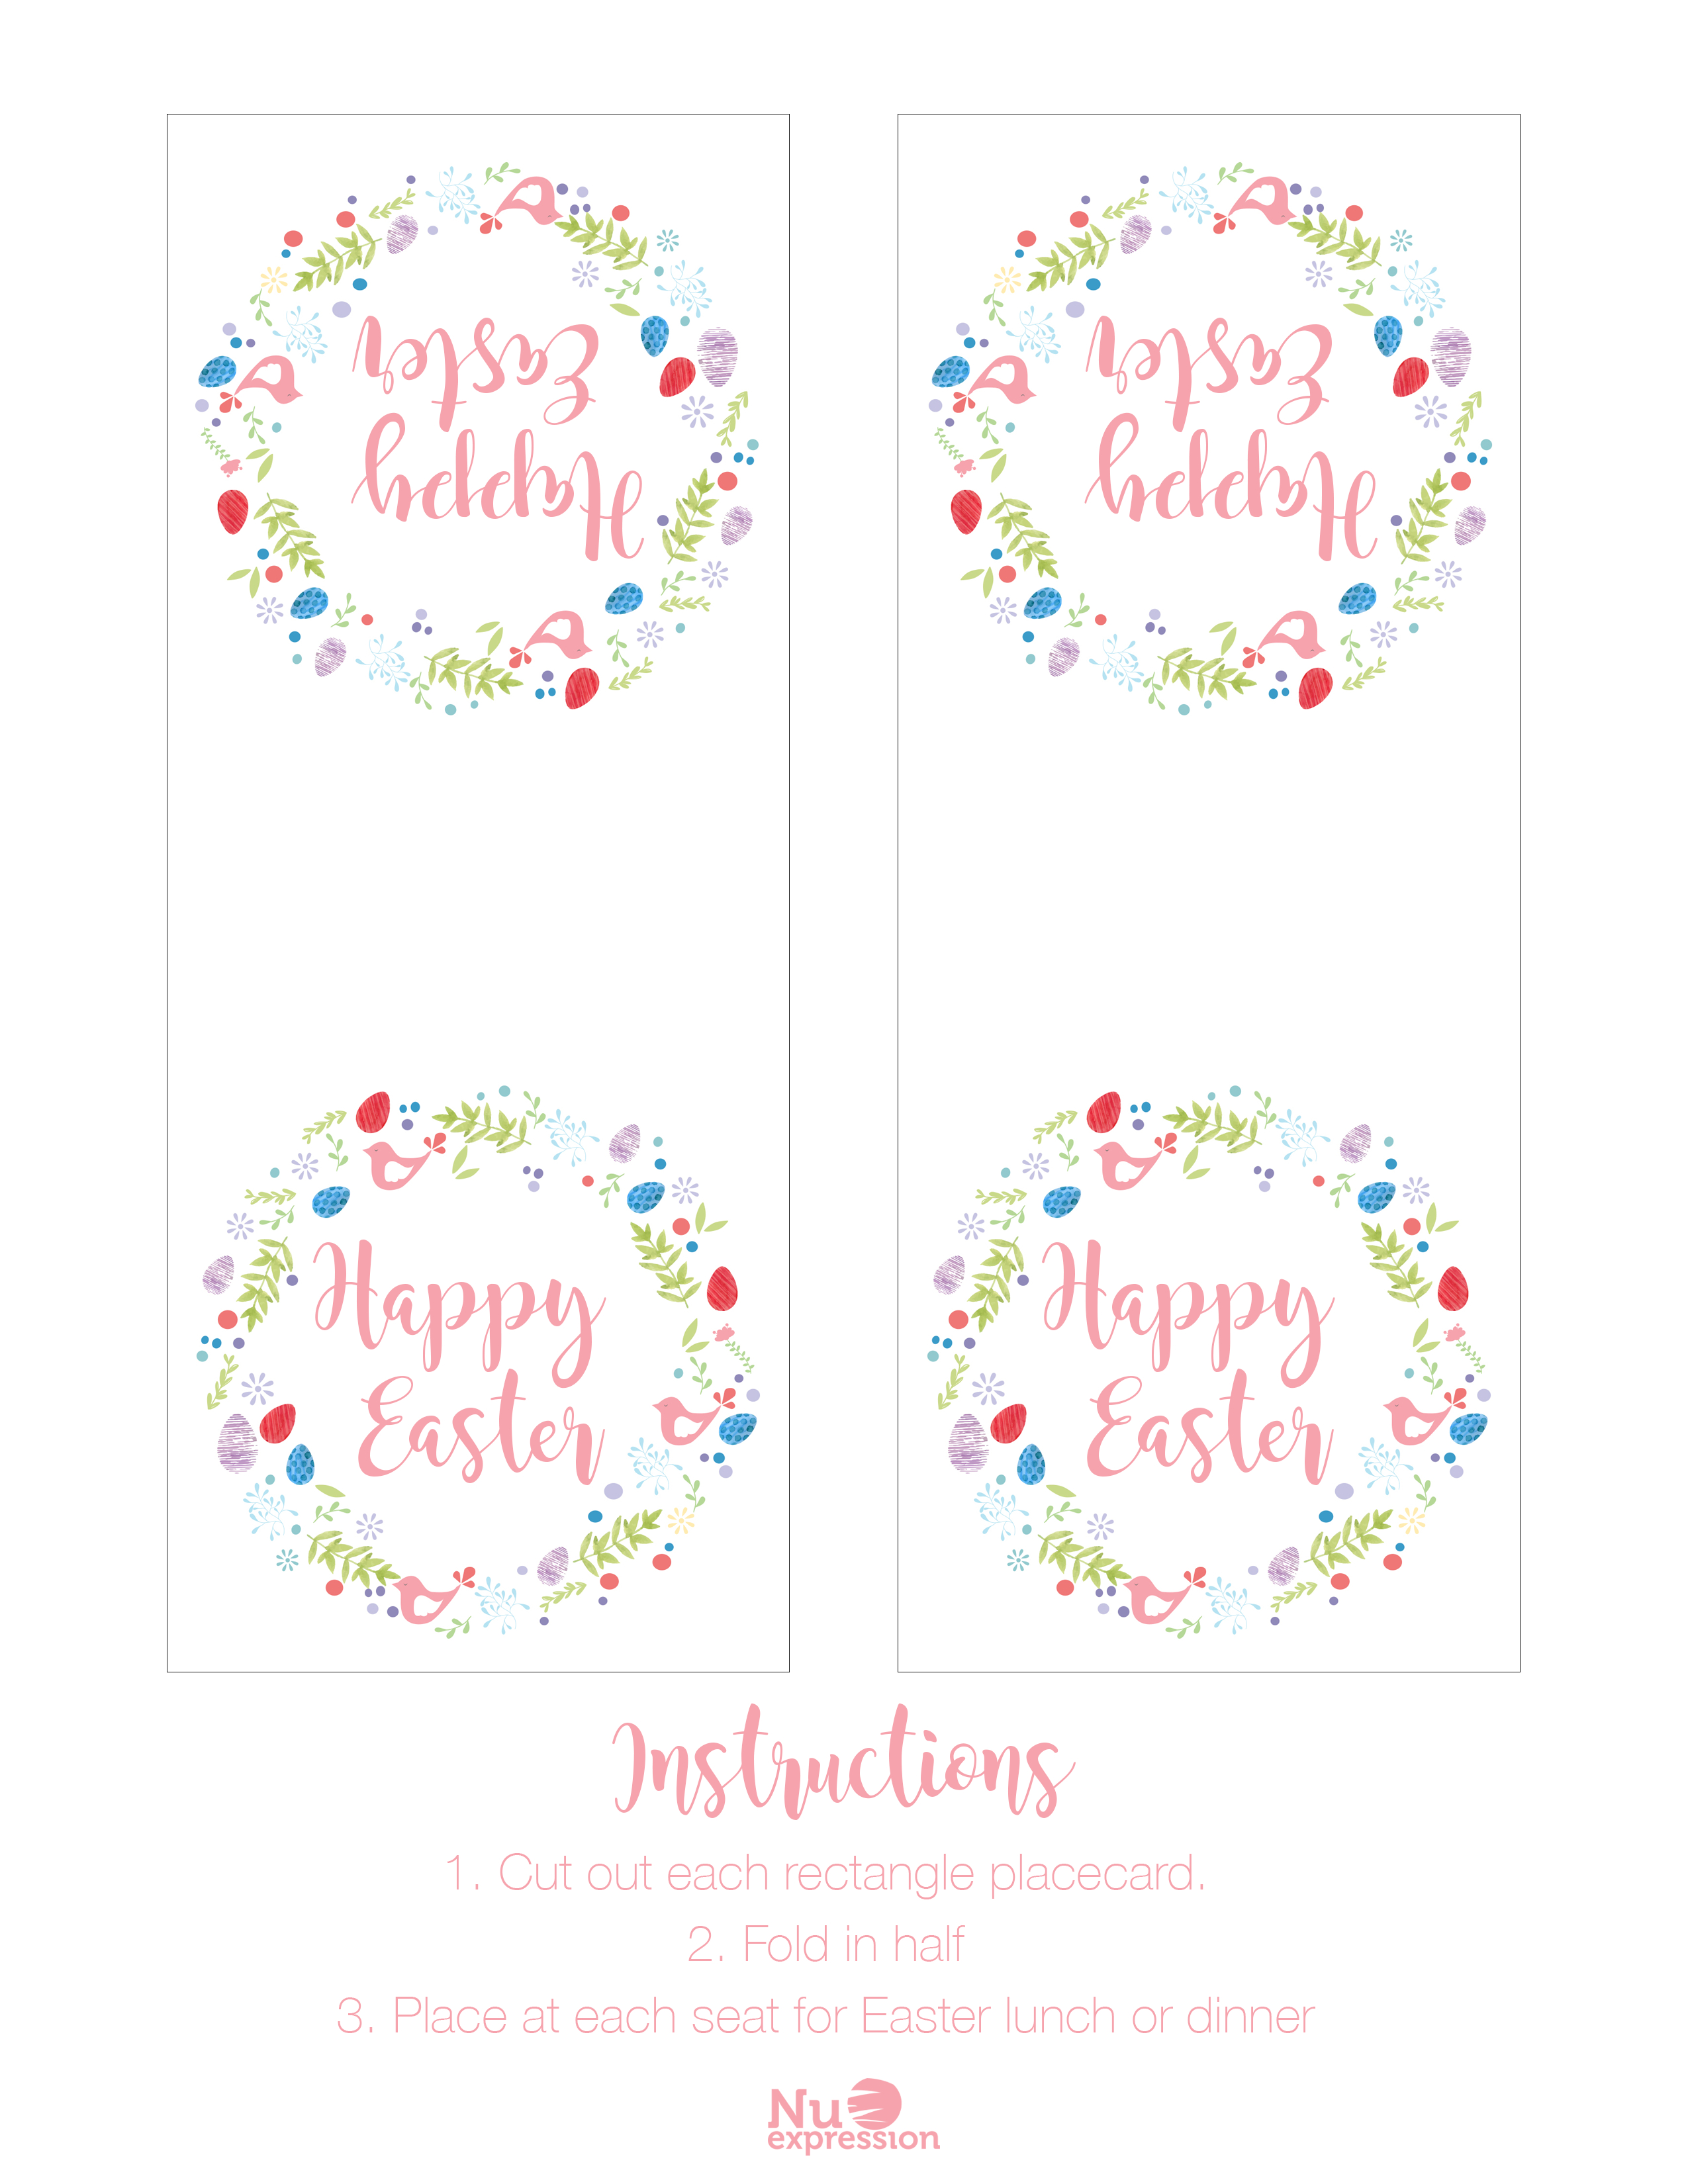 Free Easter Printables - Card, Gift Tags, + More - Free Easter Place Cards Printable